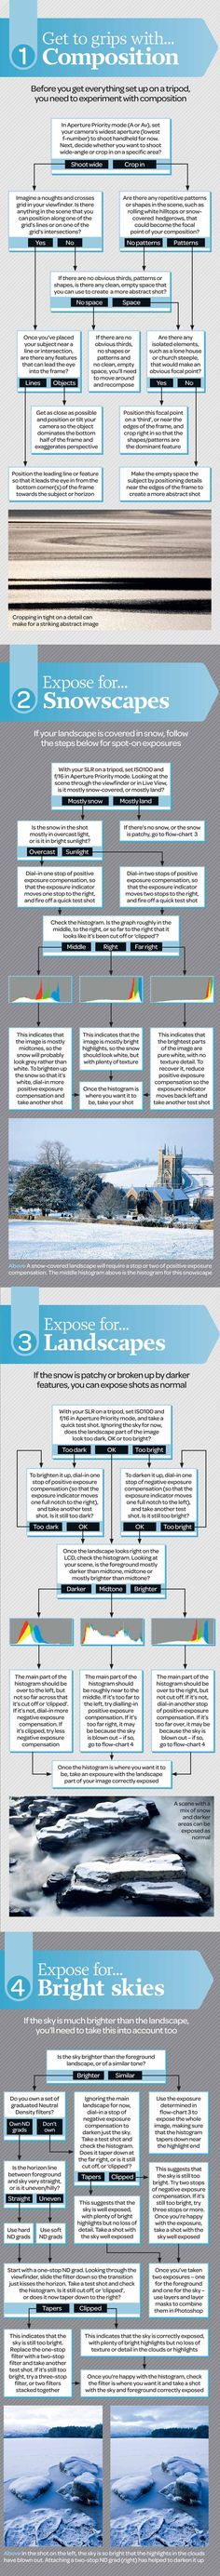 Learn how to fine tune your winter landscape photography no matter where you are with these tips from our new photography cheat sheet.